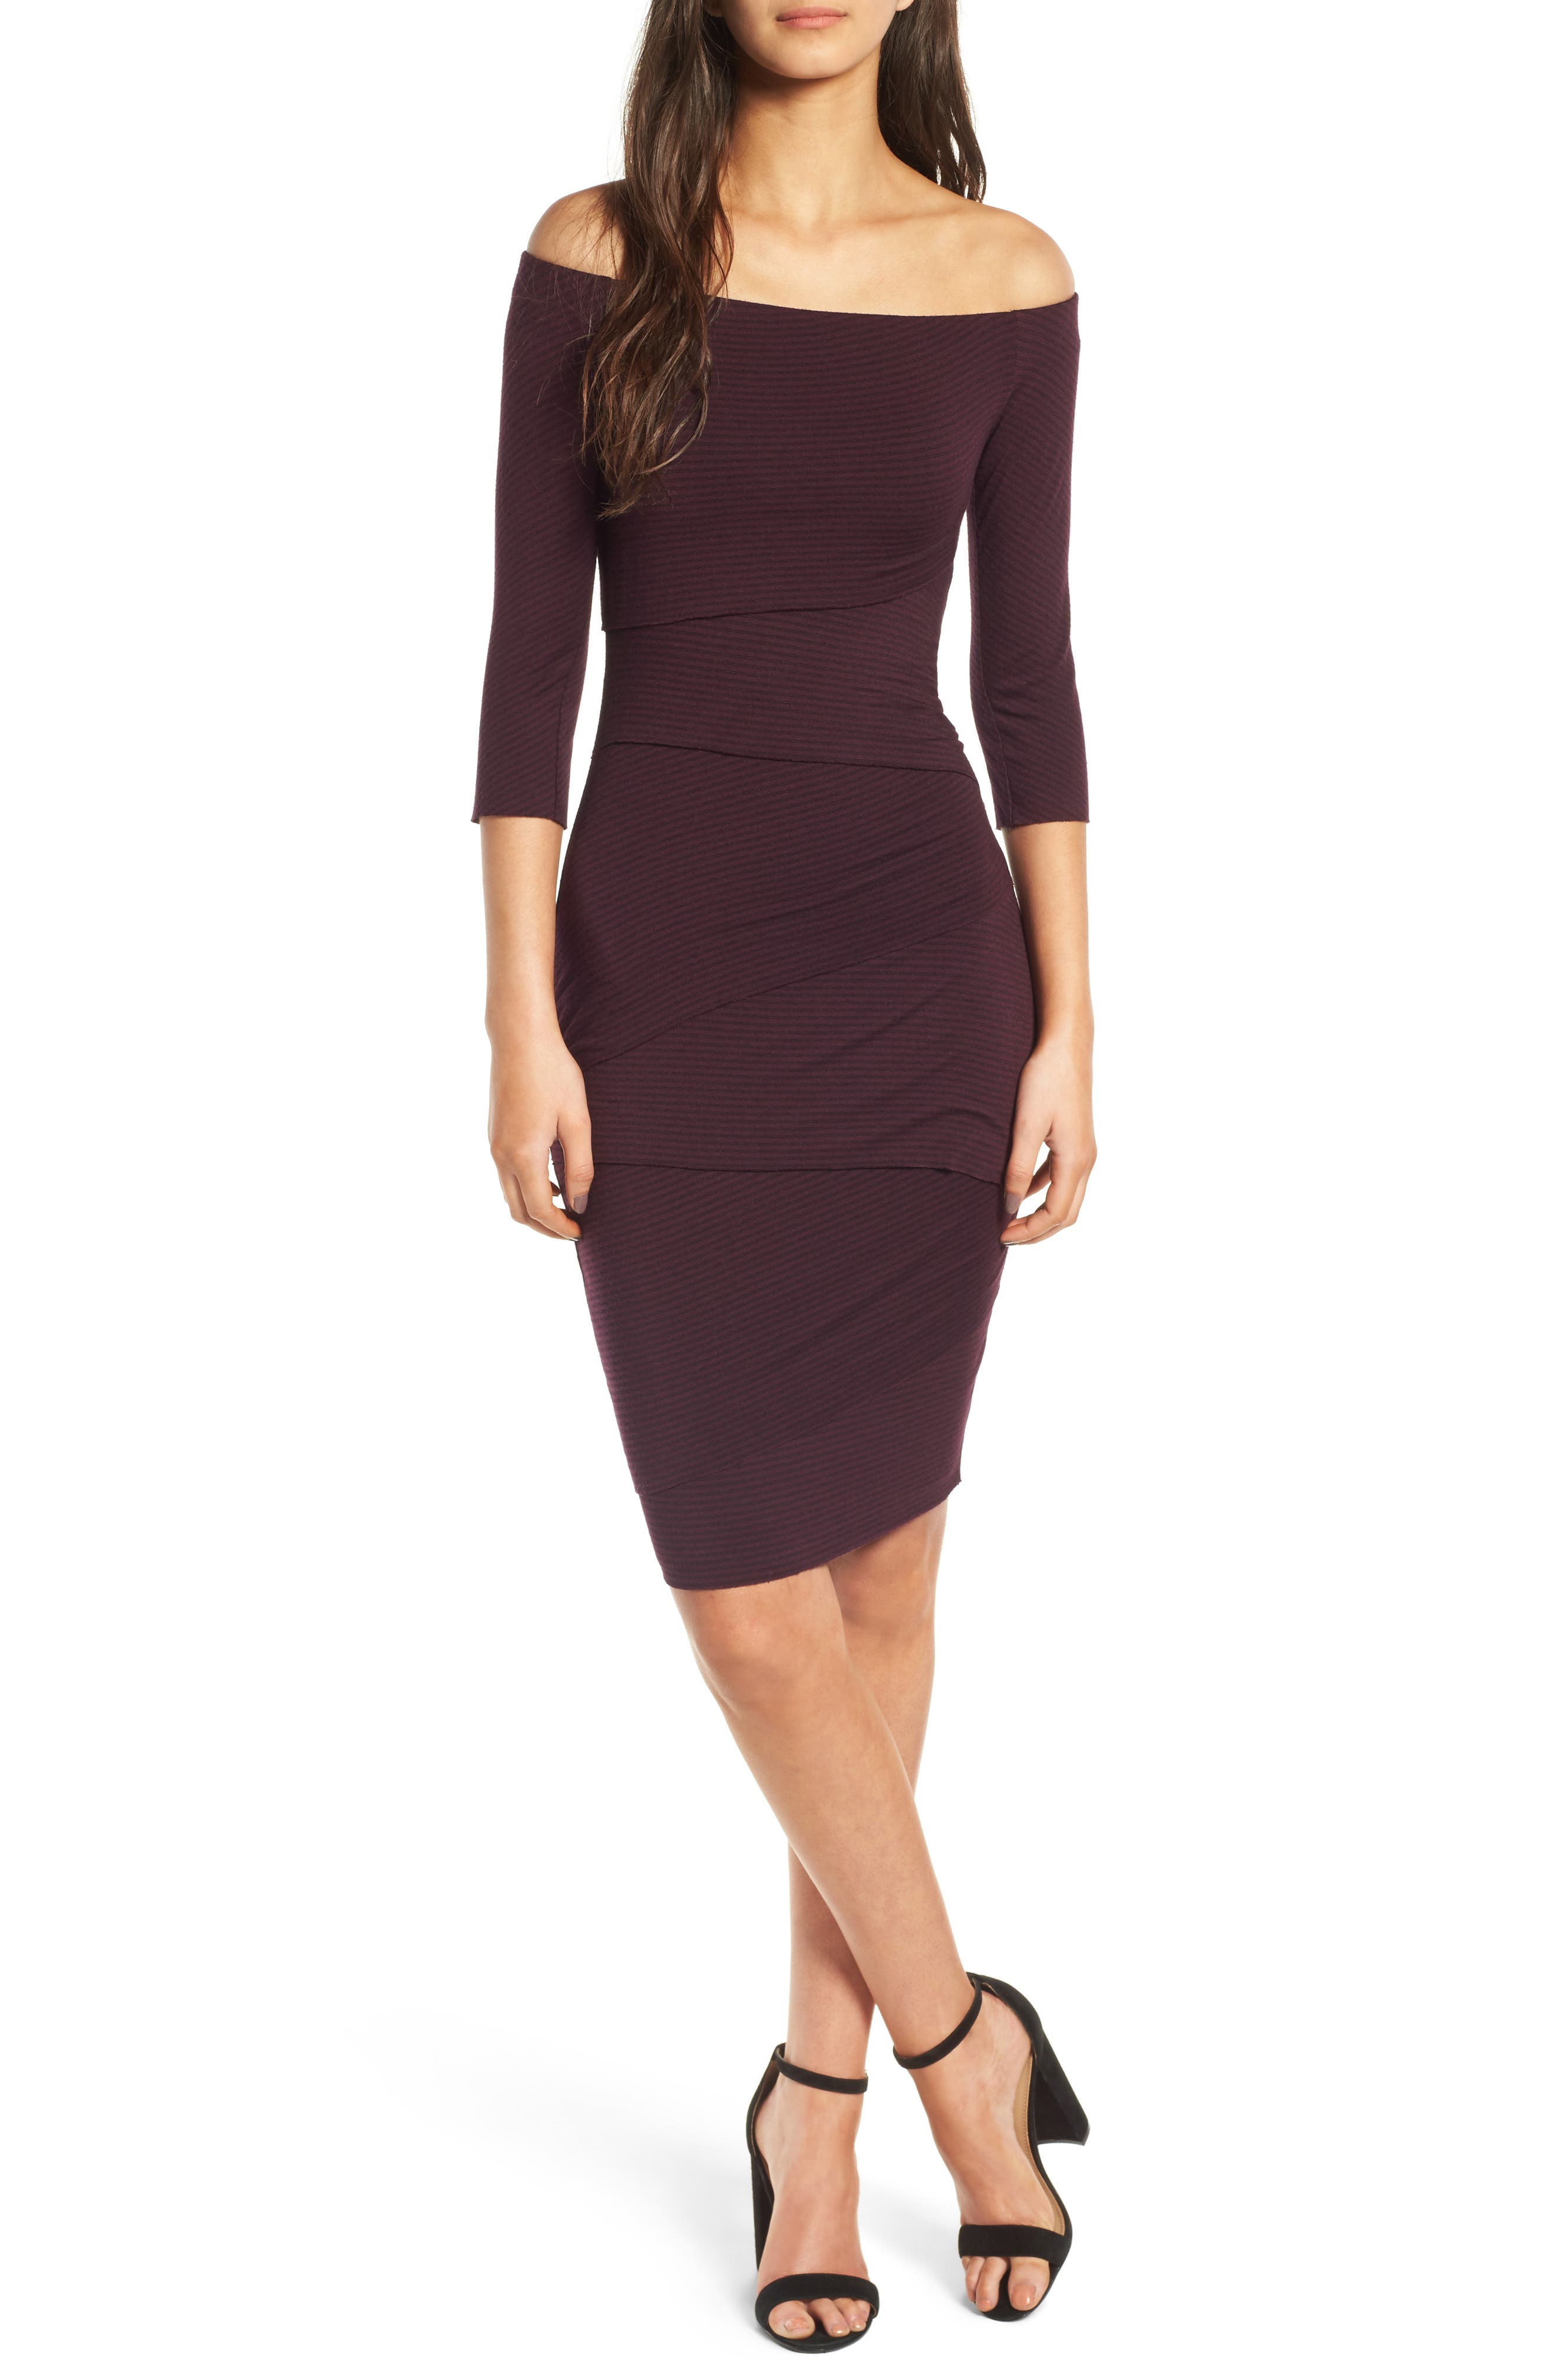 Bailey 44 Degage Off the Shoulder Body-Con Dress